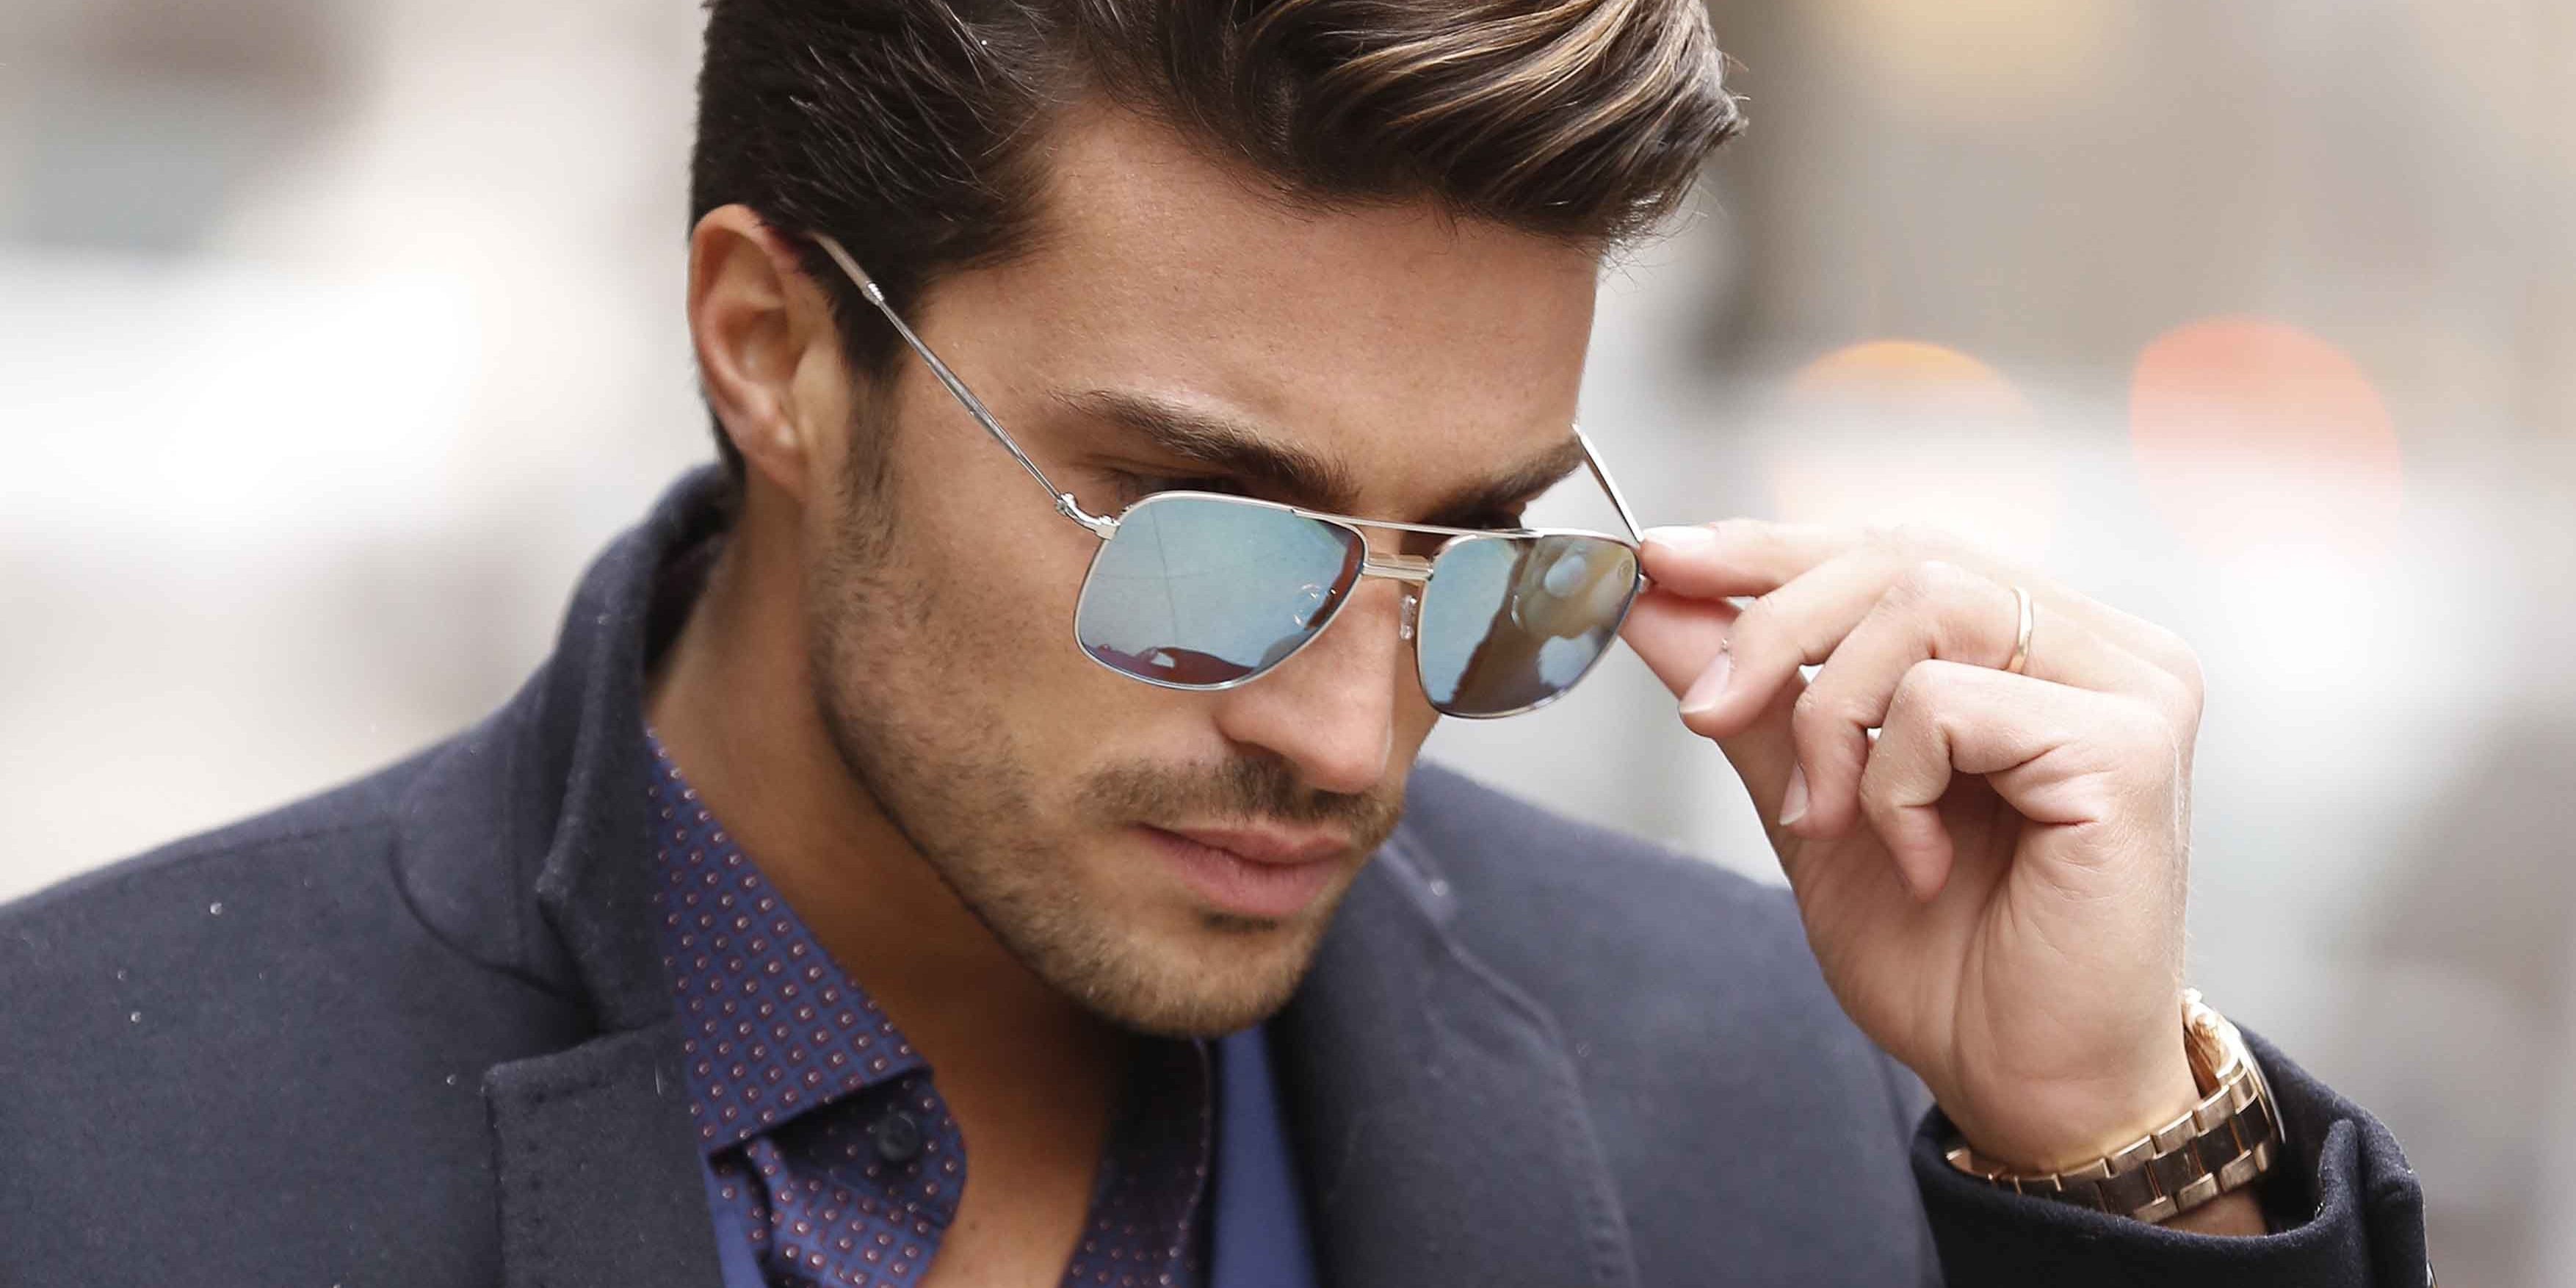 Mido 2016 Mariano Di Vaio For Hally Son